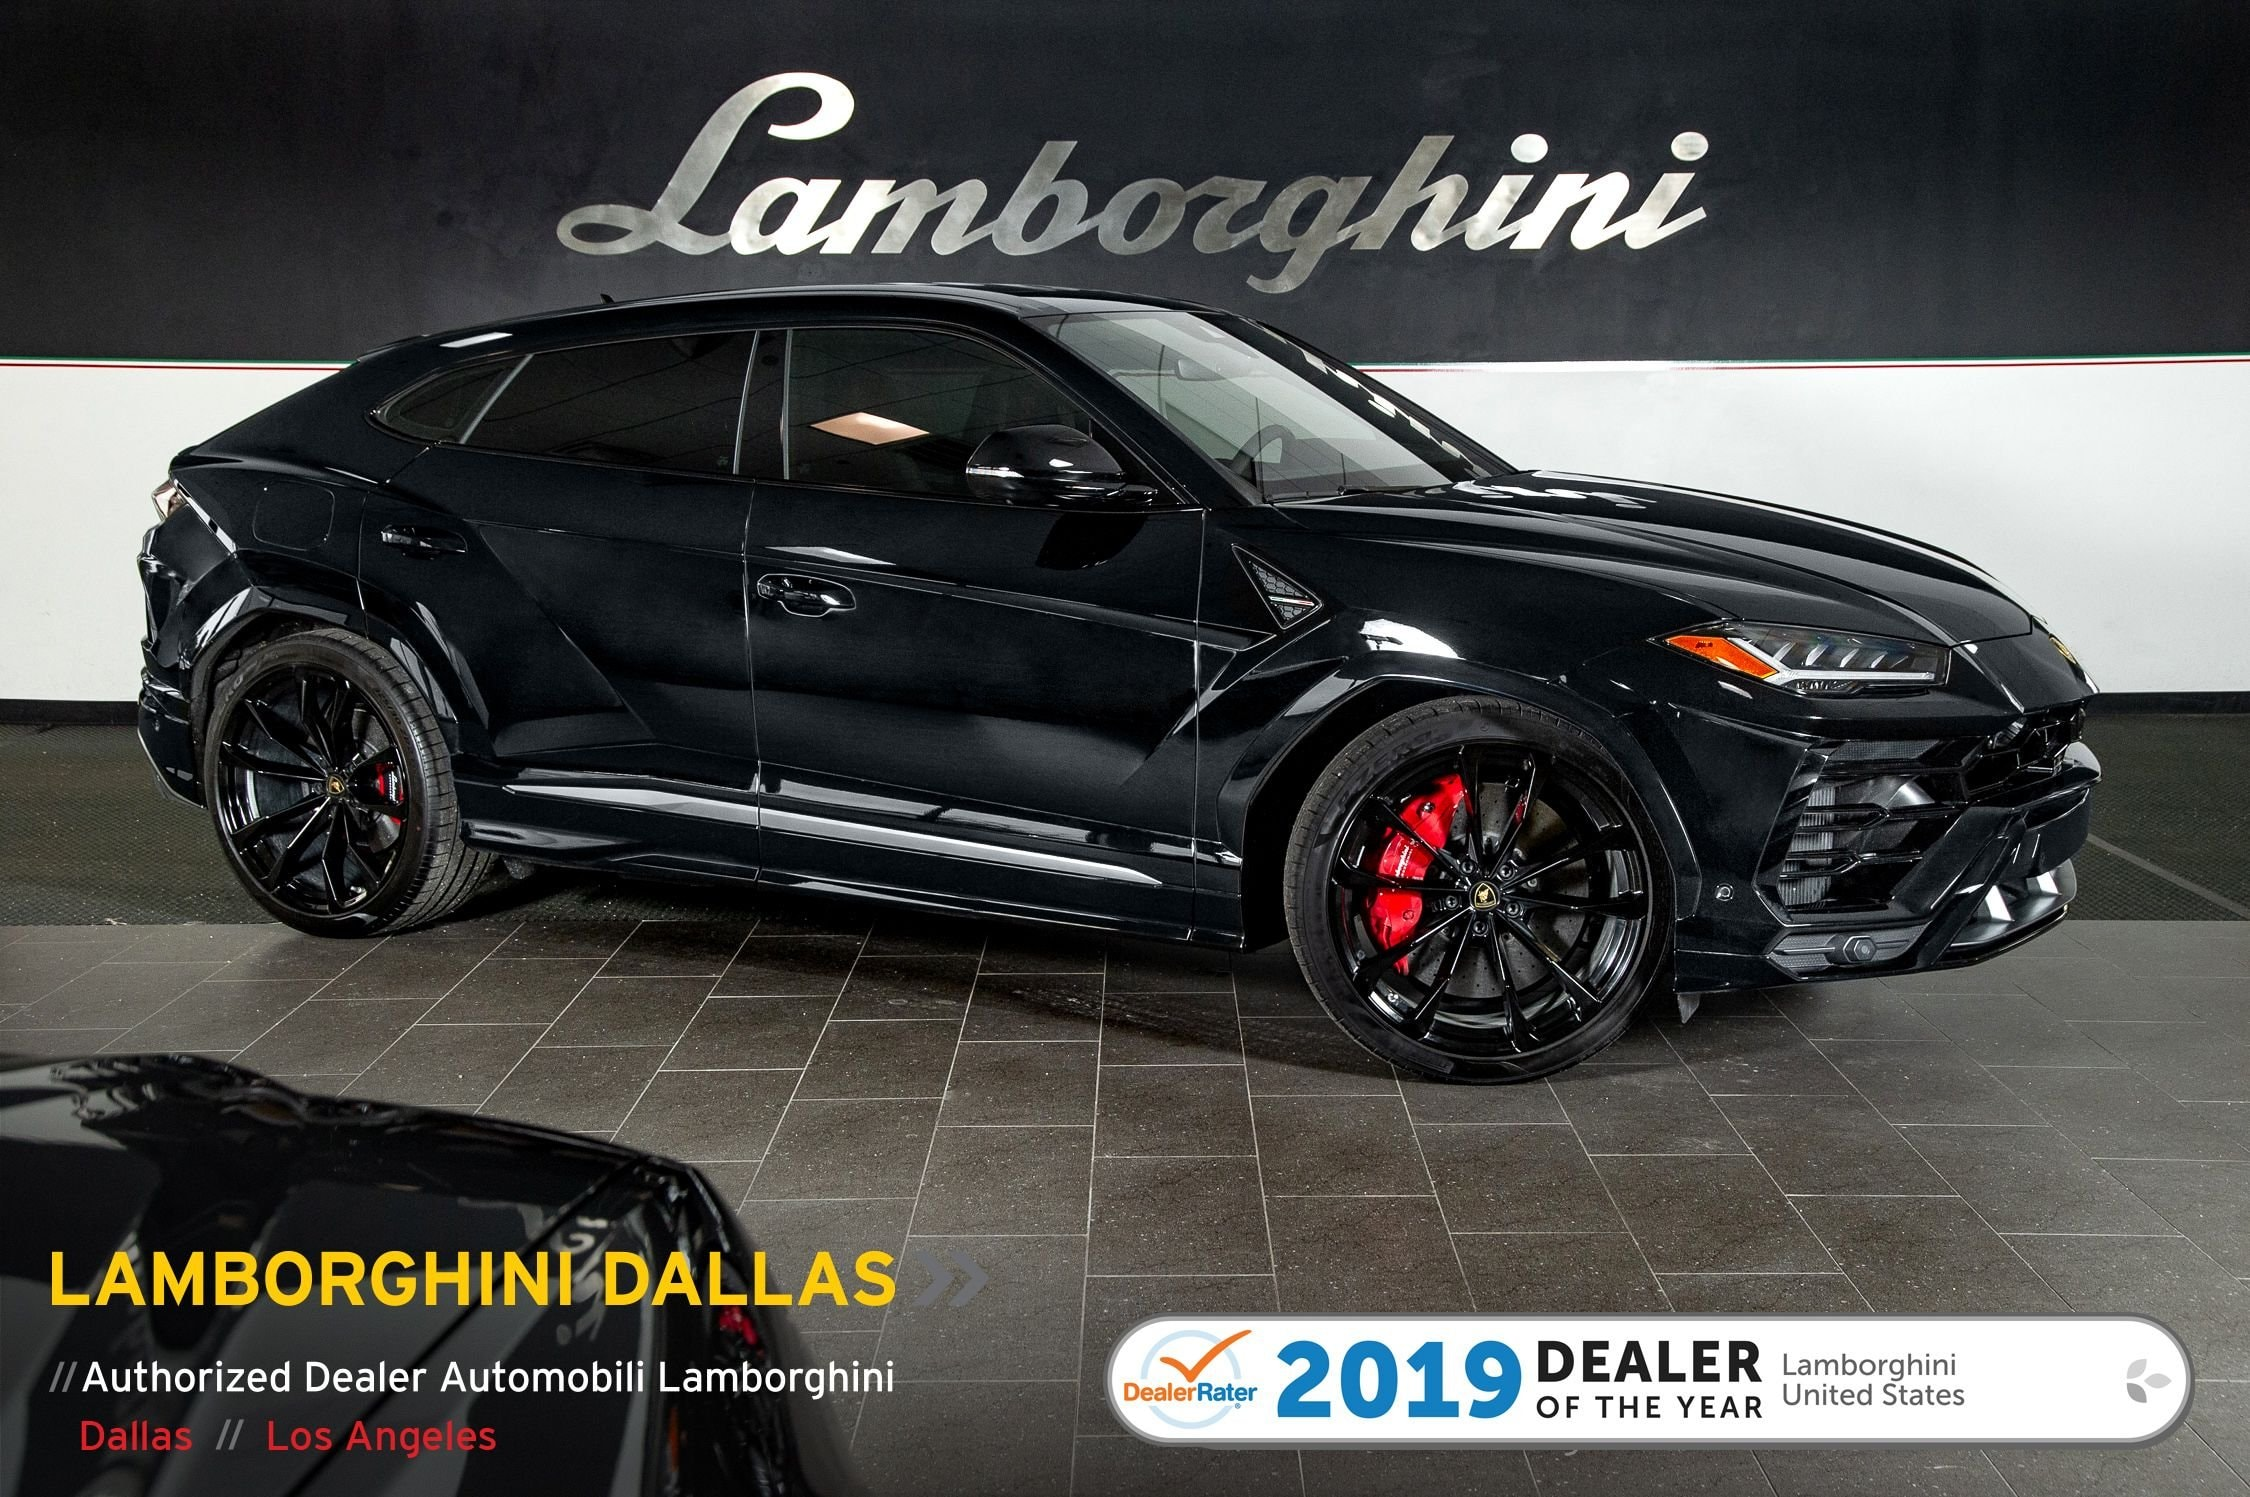 used 2019 lamborghini urus for sale richardson tx stock 20l0277a vin zpbua1zl5kla05903 used 2019 lamborghini urus for sale richardson tx stock 20l0277a vin zpbua1zl5kla05903